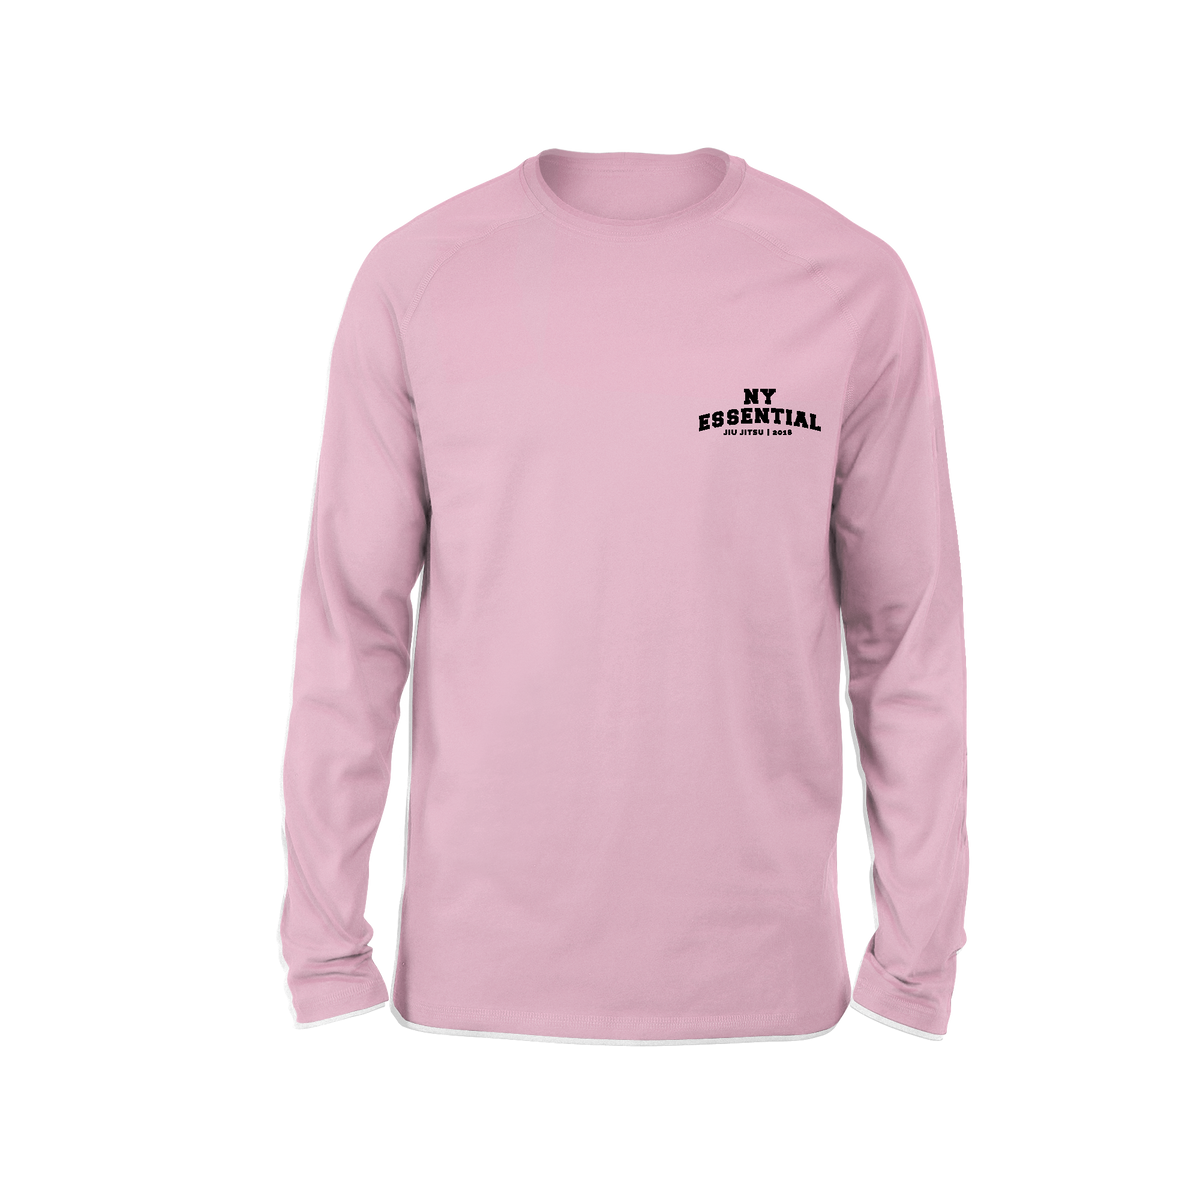 EJ College Long Sleeve T-Shirt - Pink